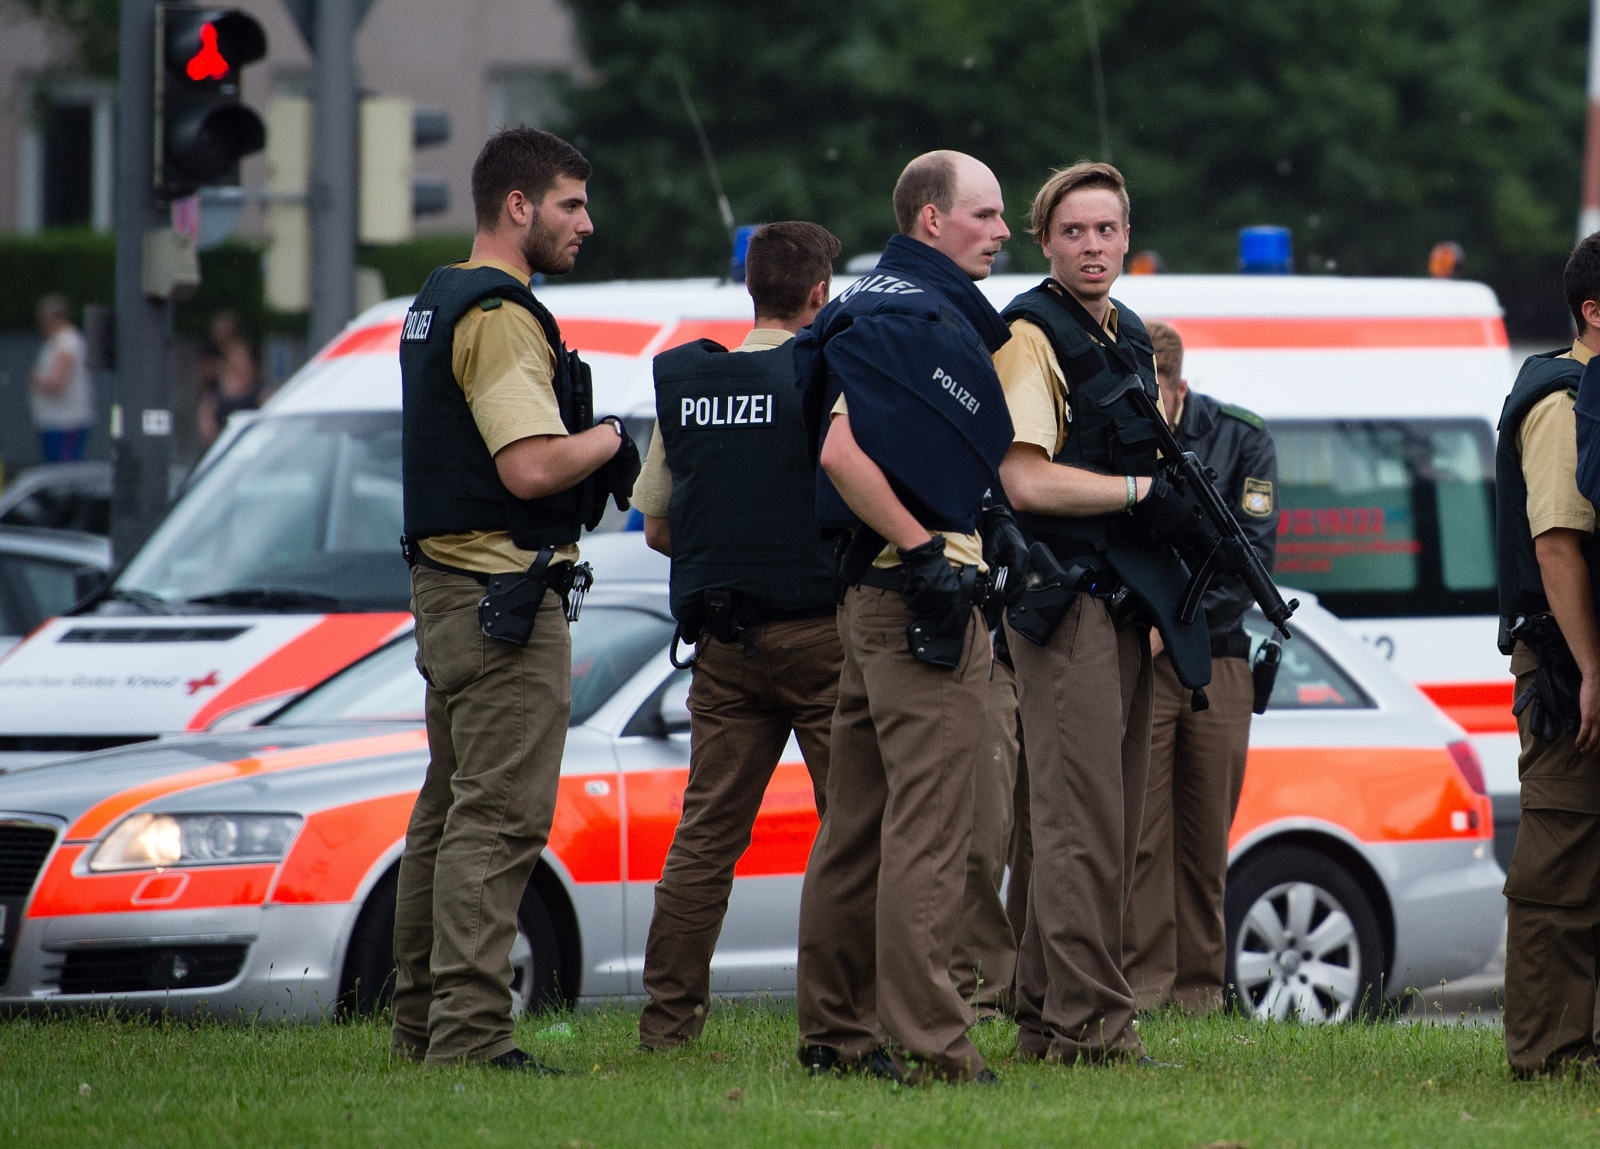 Germany: Police Detain Alleged High-Ranking IS Member